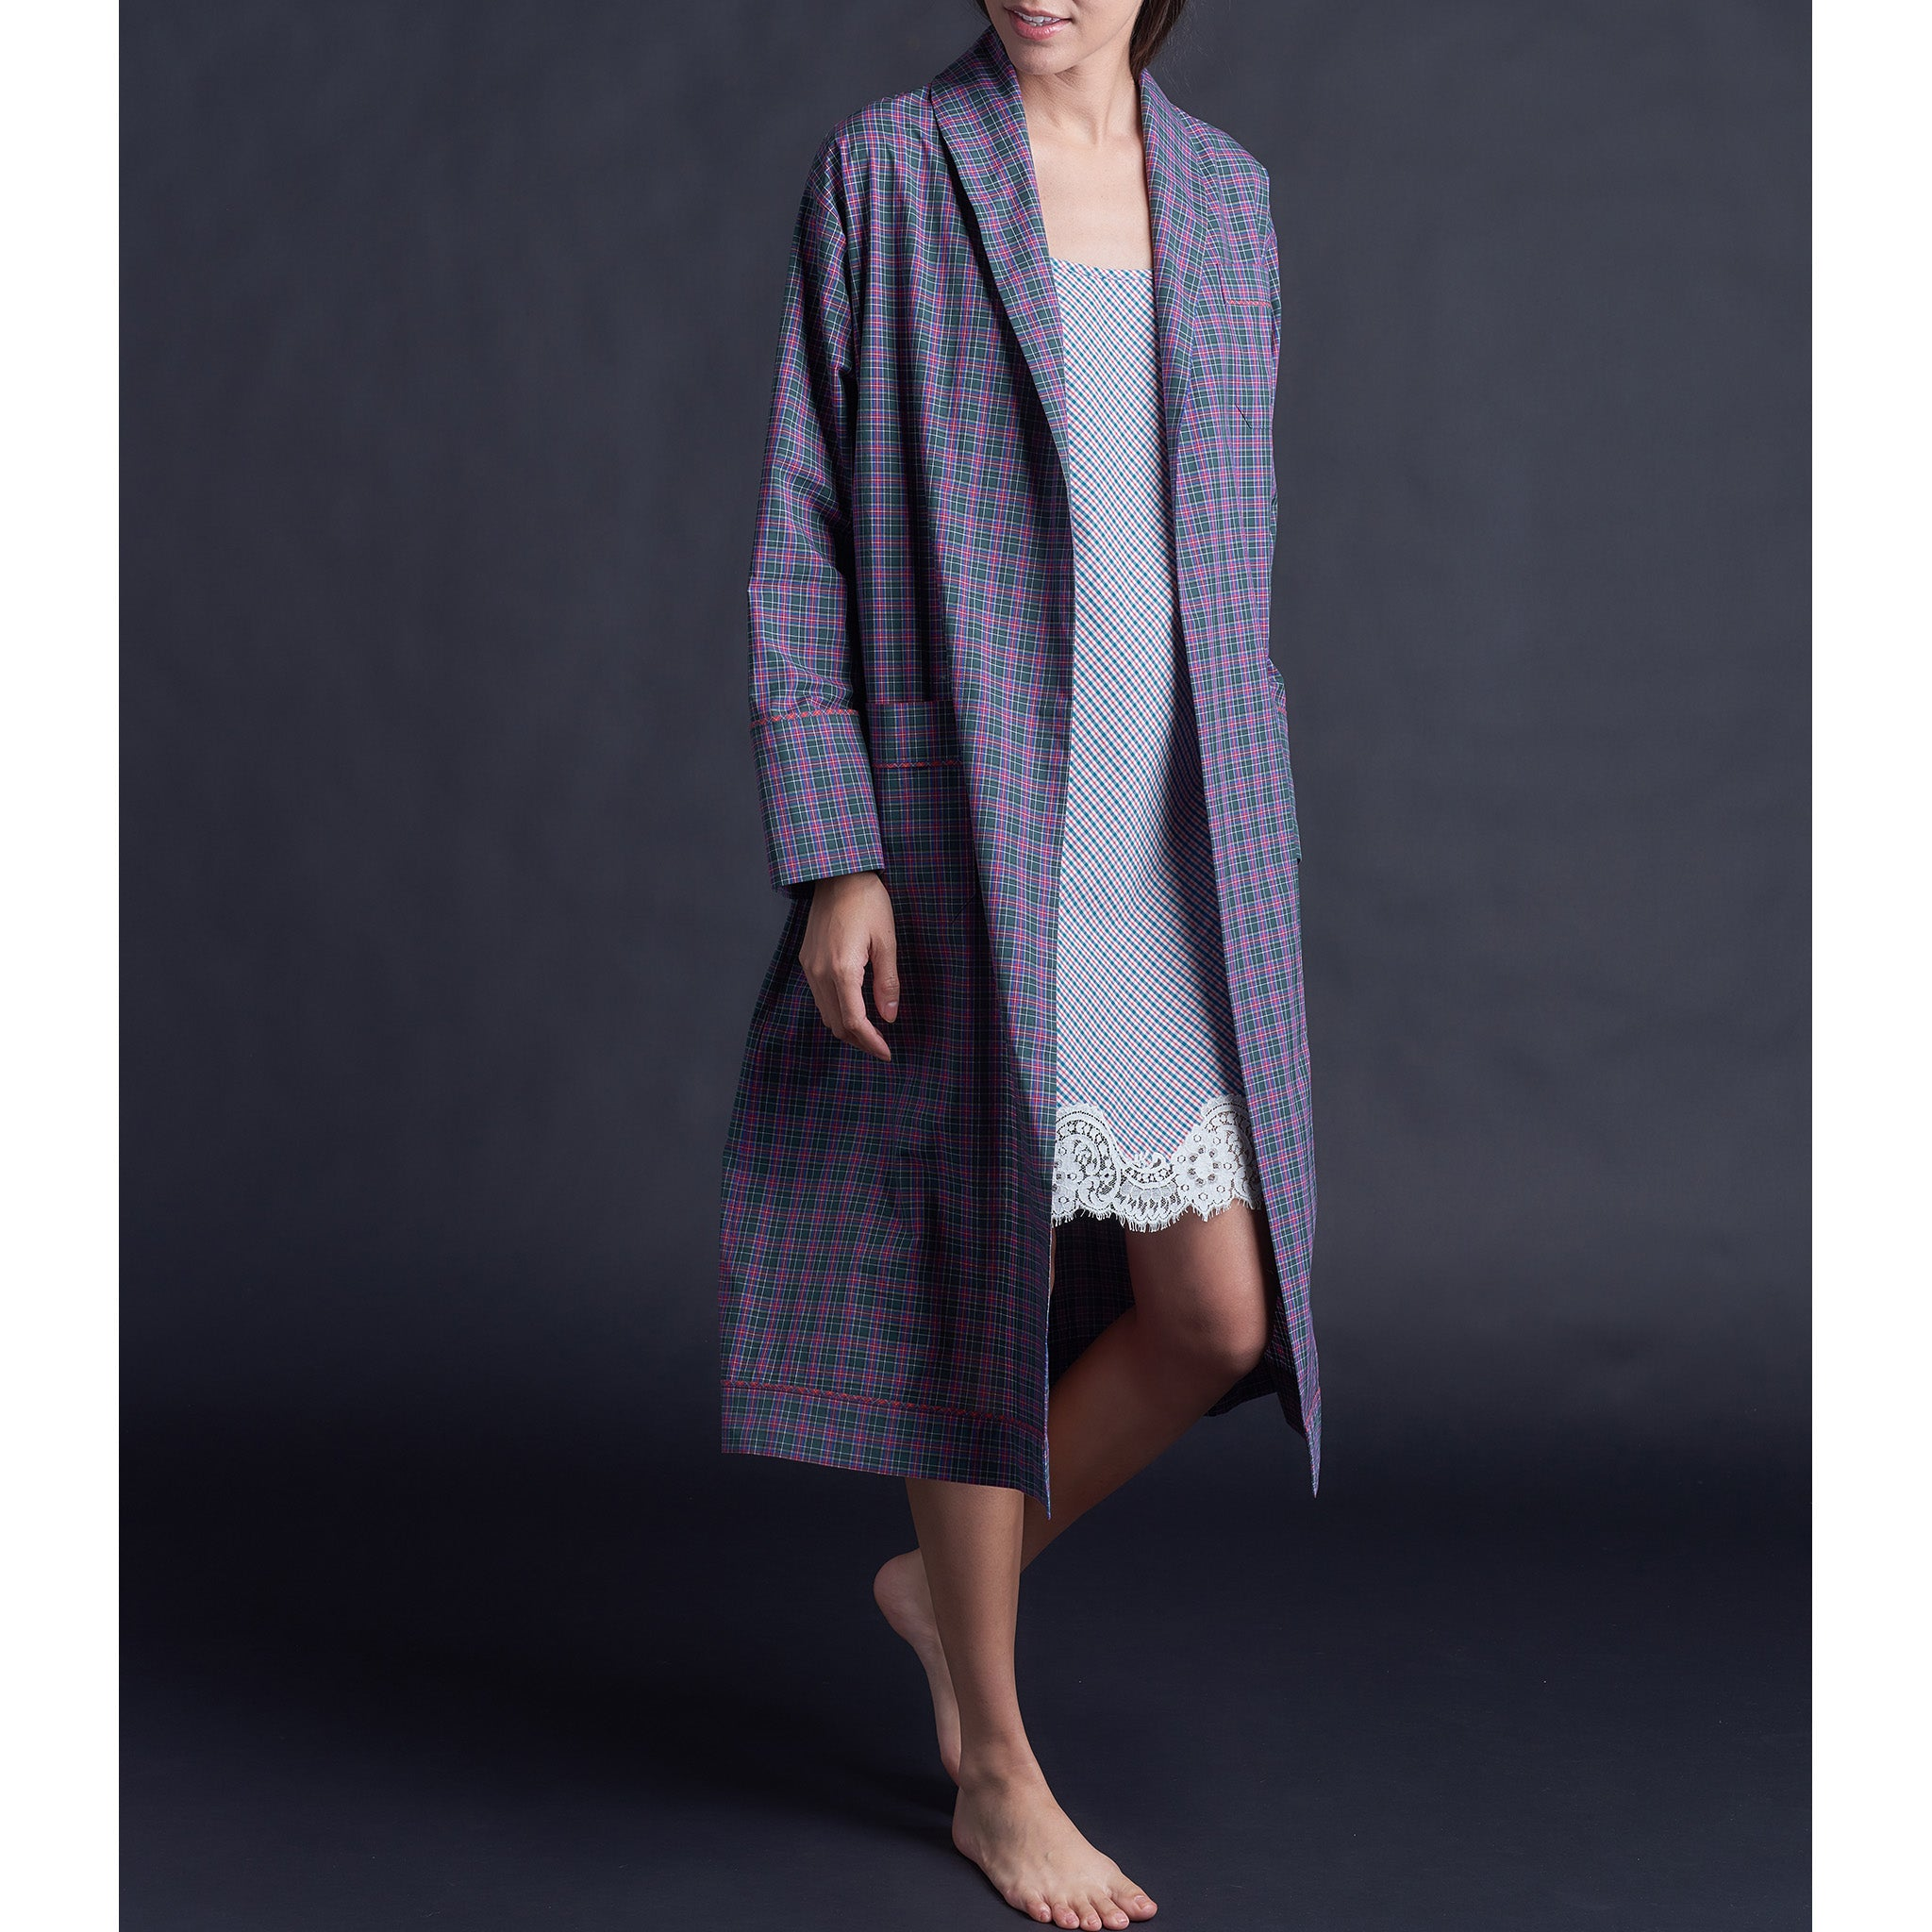 Claudette Robe in Italian Cotton Purple Plaid